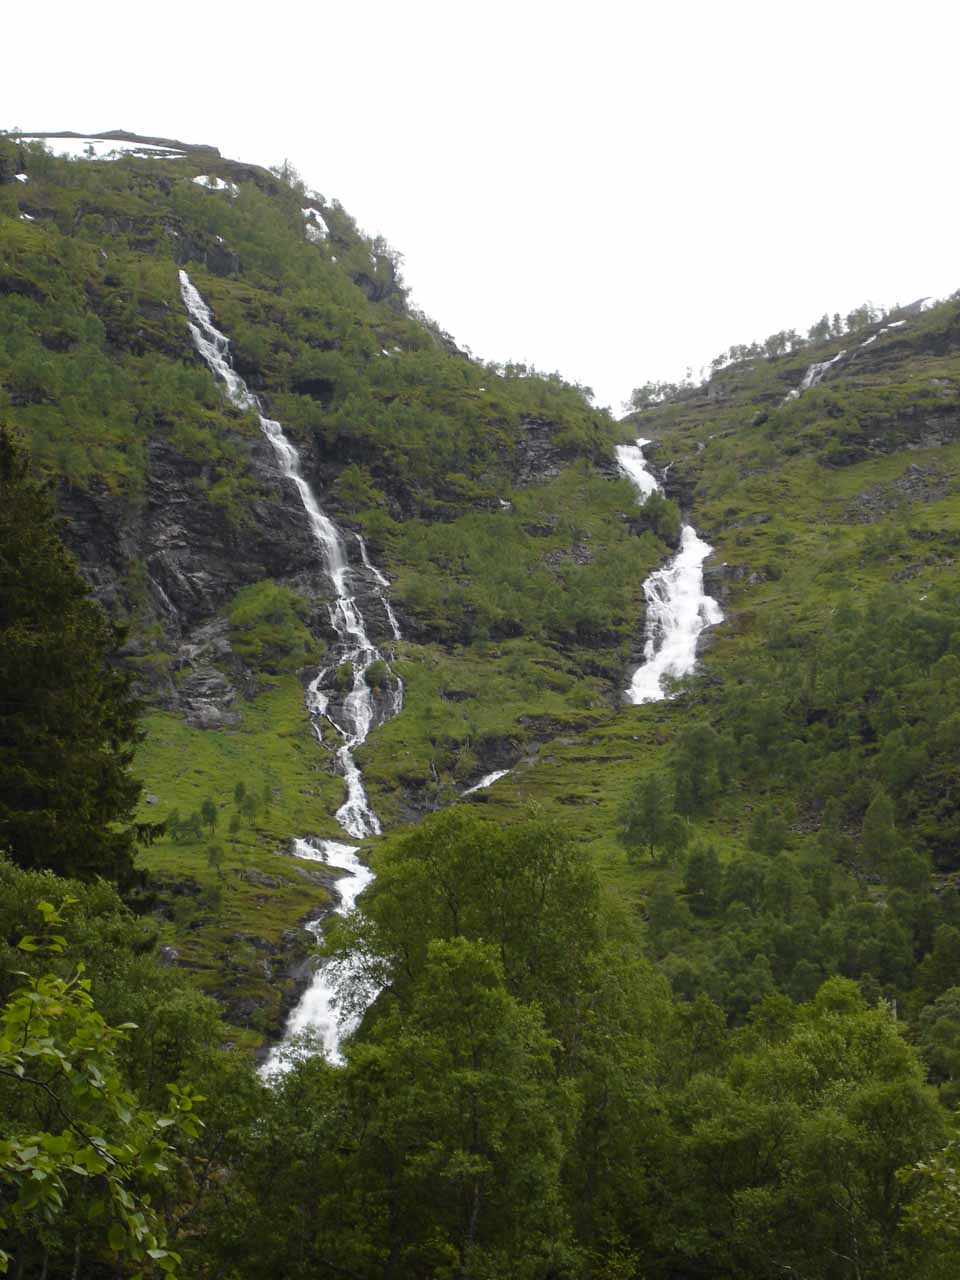 More waterfalls seen during our self-tour of Flamsdalen